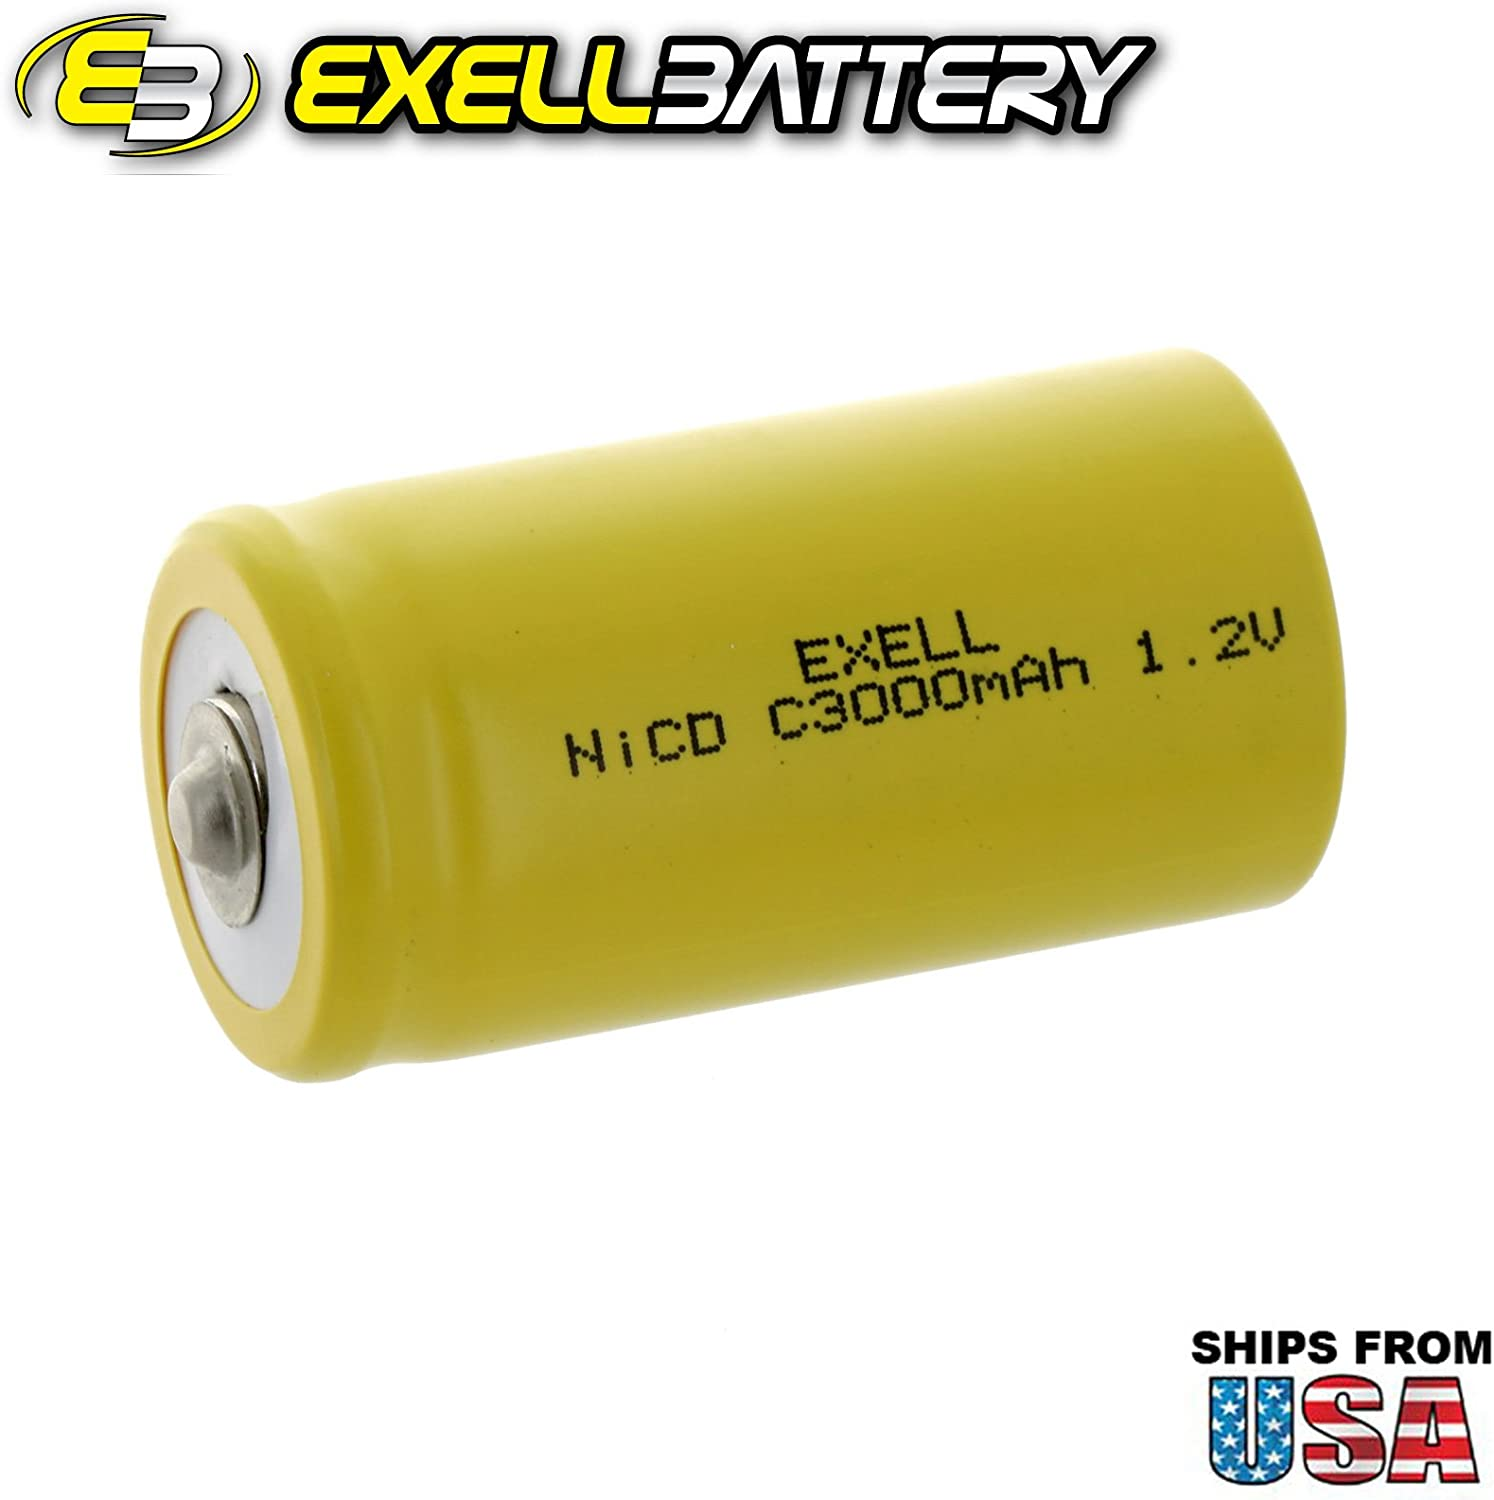 Exell C Size 1.2V 3000mAh NiCD Button Top Rechargeable Batteries for high power static applications RC devices 2-PACK electric mopeds electric tools Telecoms, UPS and Smart grid meters radios